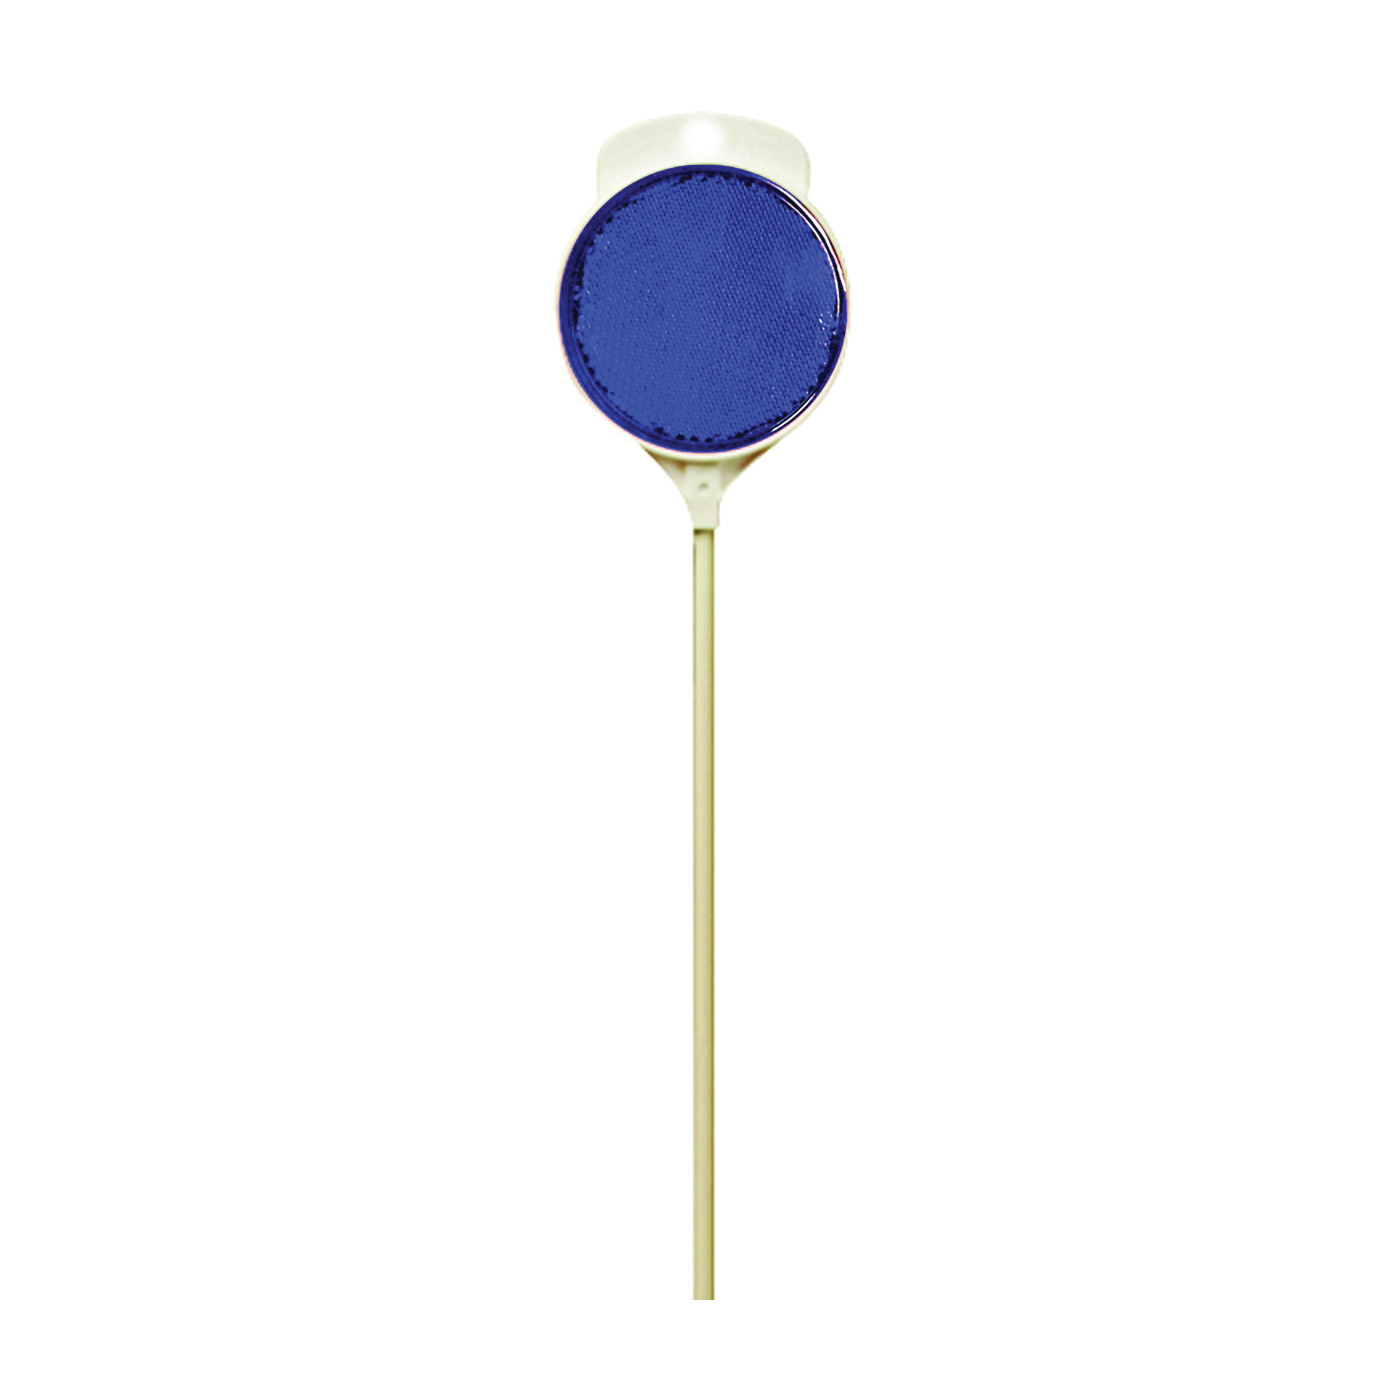 Picture of HY-KO DM300B36 Driveway Marker, Fiberglass Post, Blue Reflector